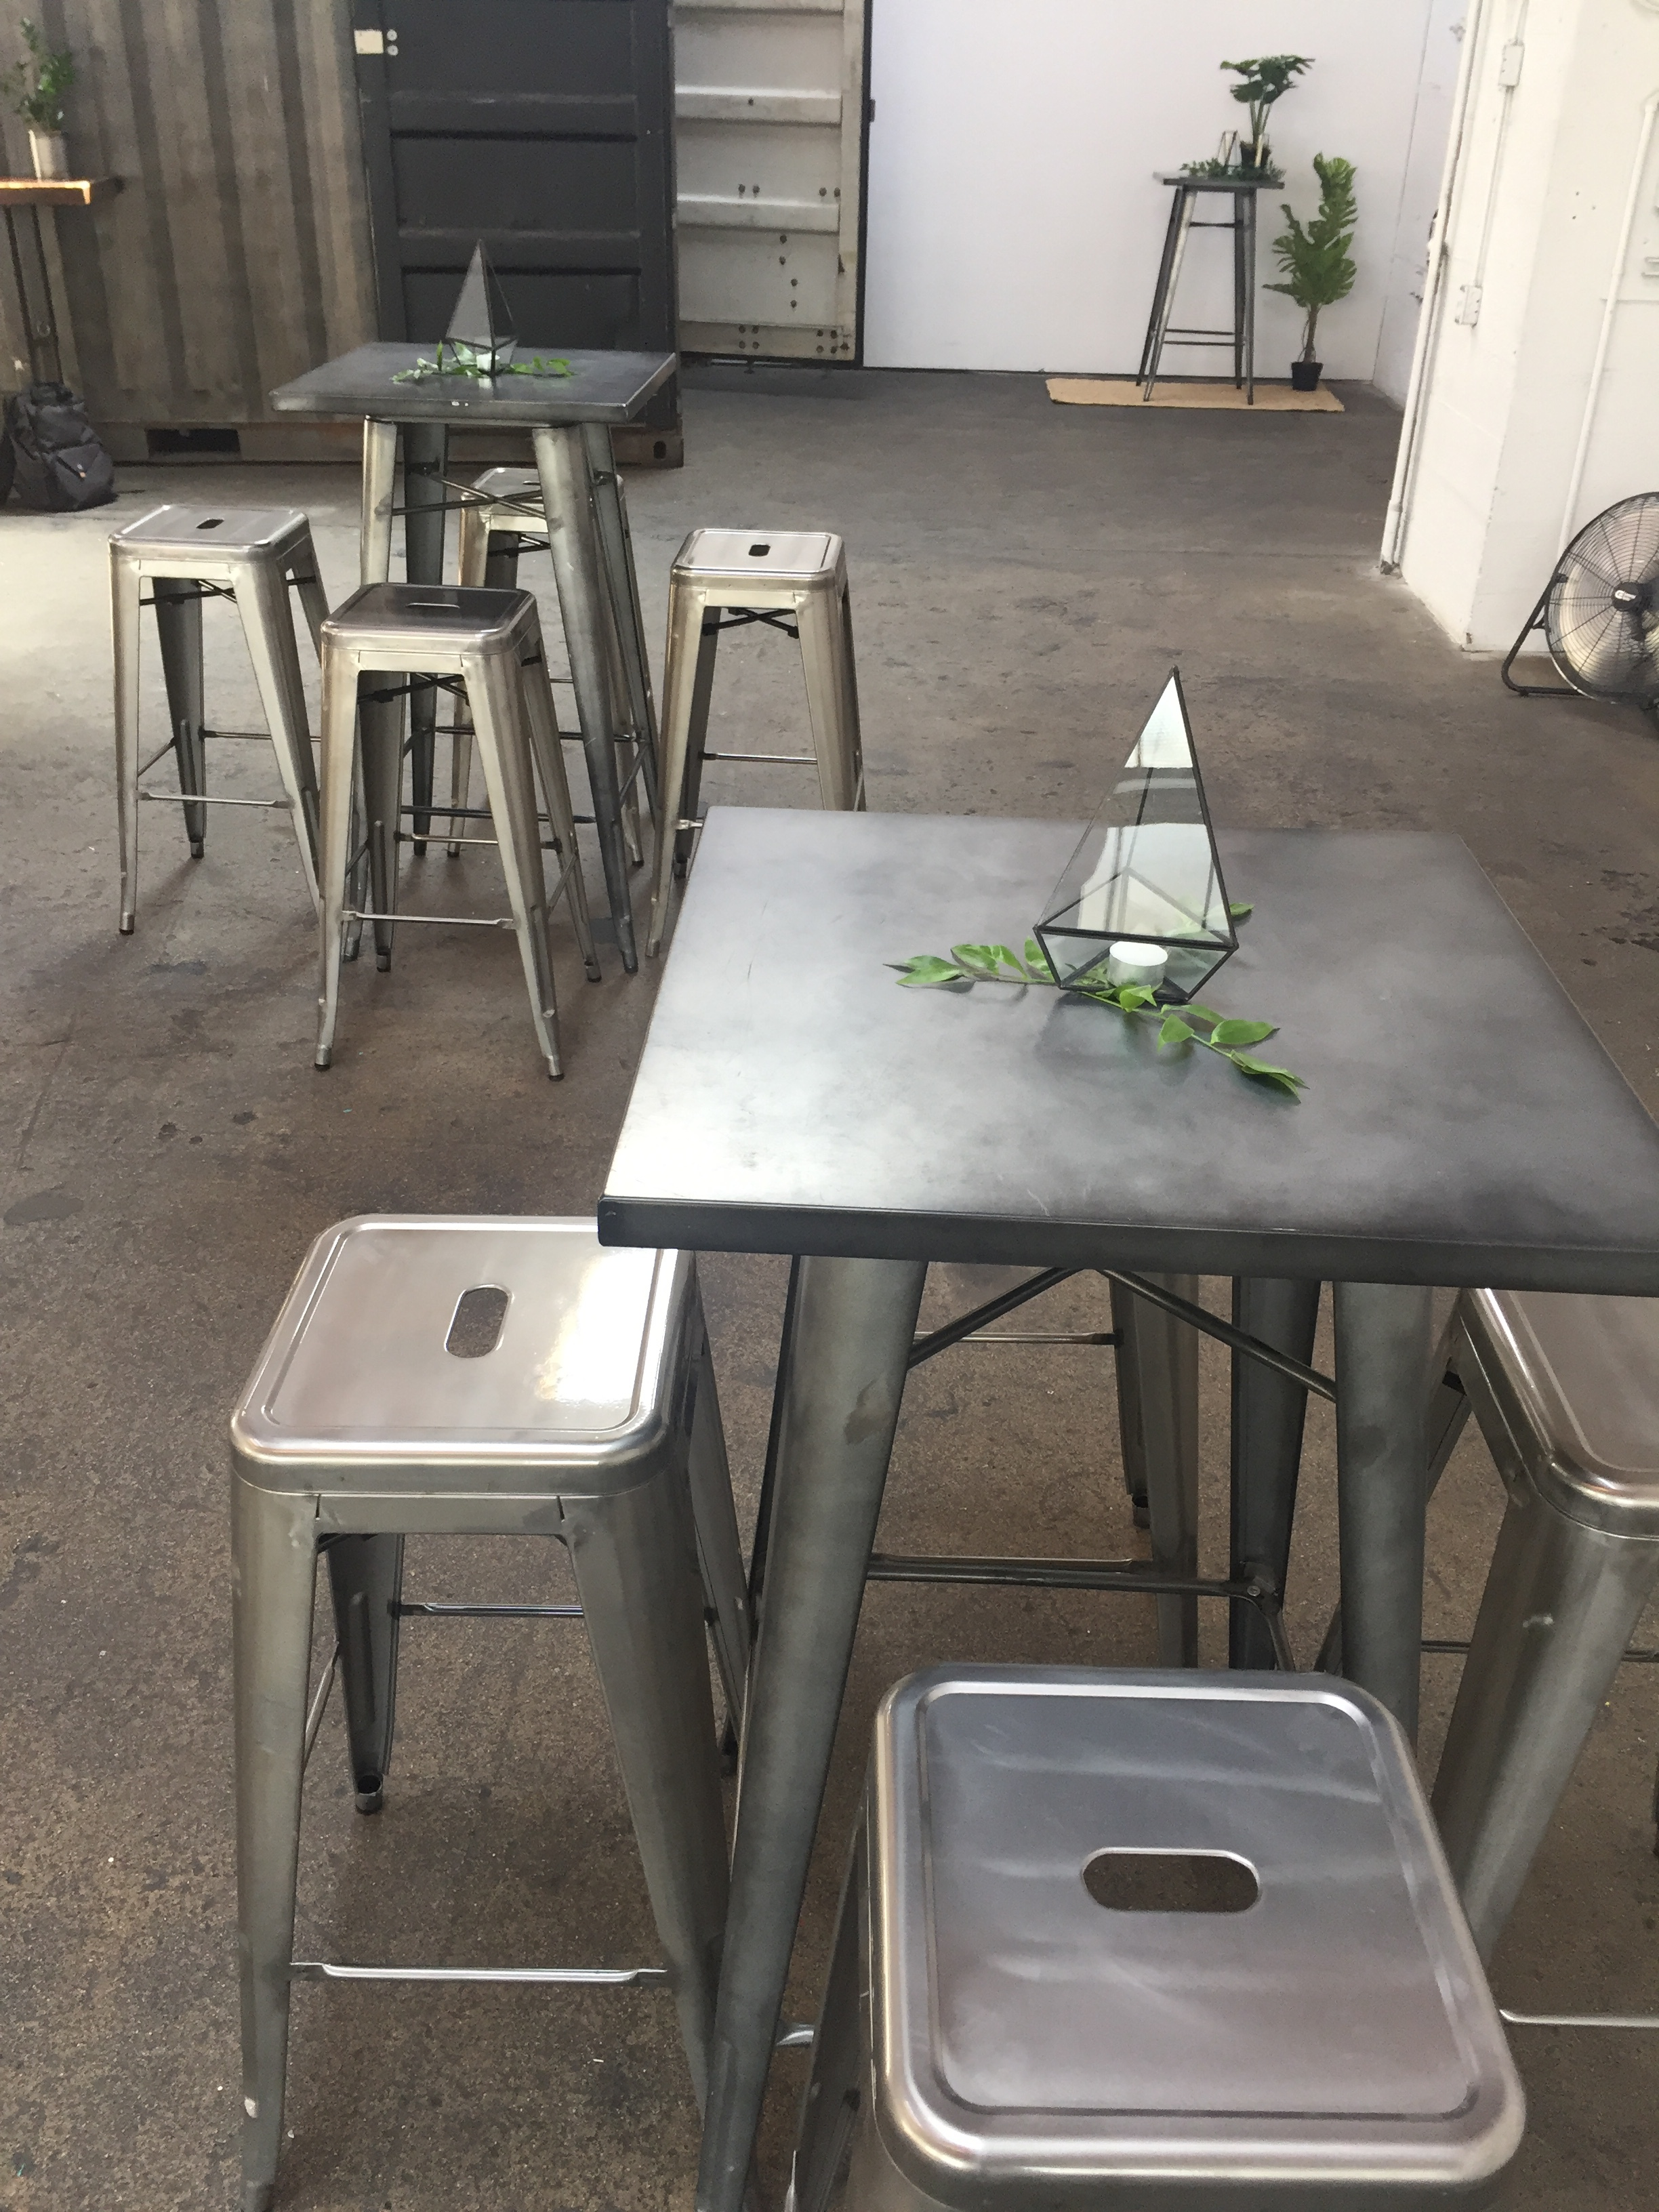 silver bar stool   Quantity: 30  Price: $10.50